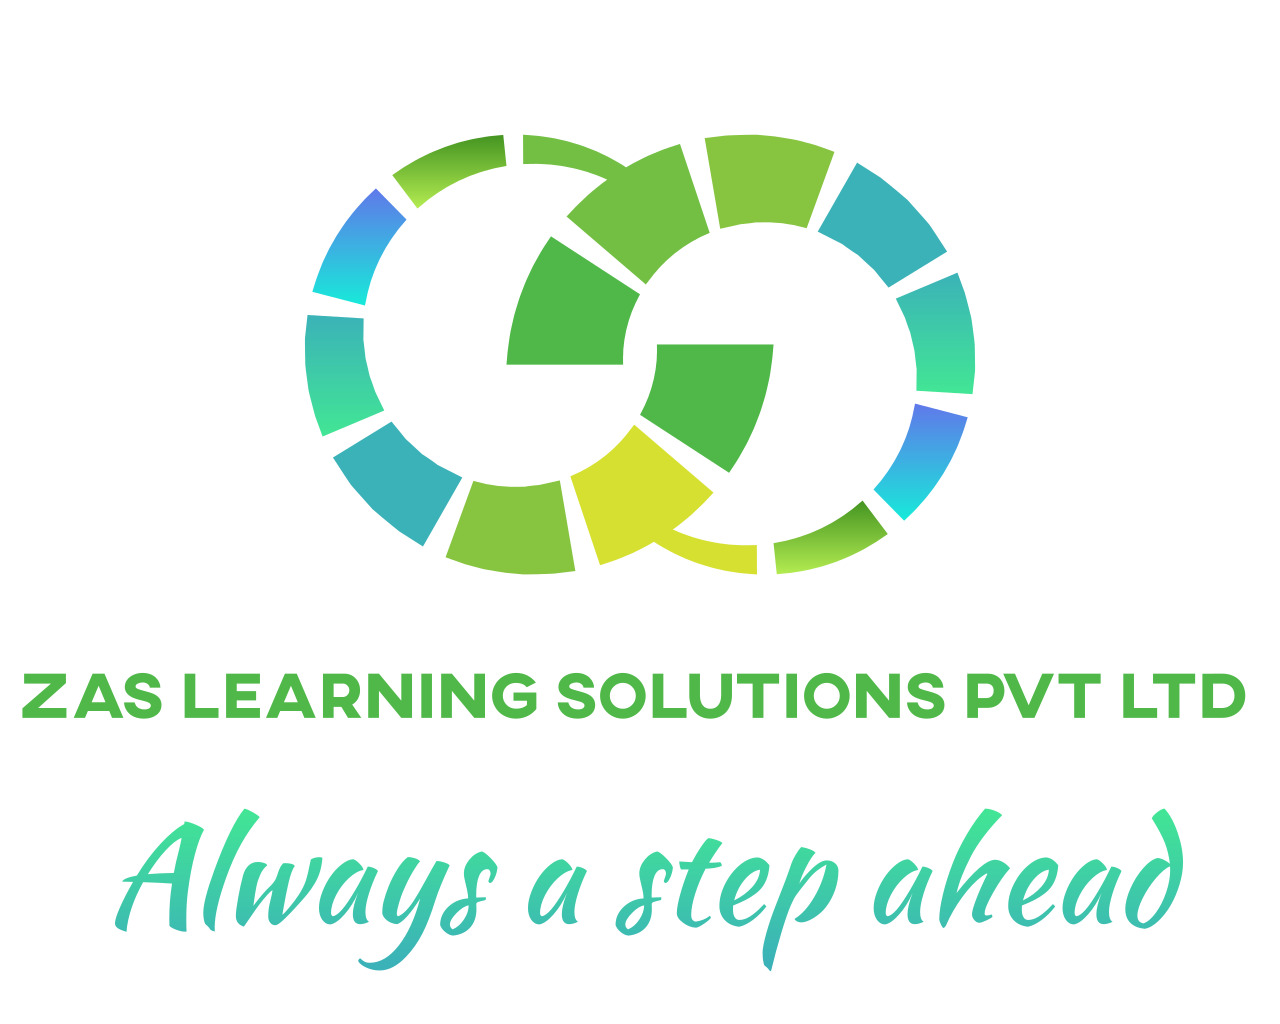 Zas Learning Solutions Pvt. Ltd.